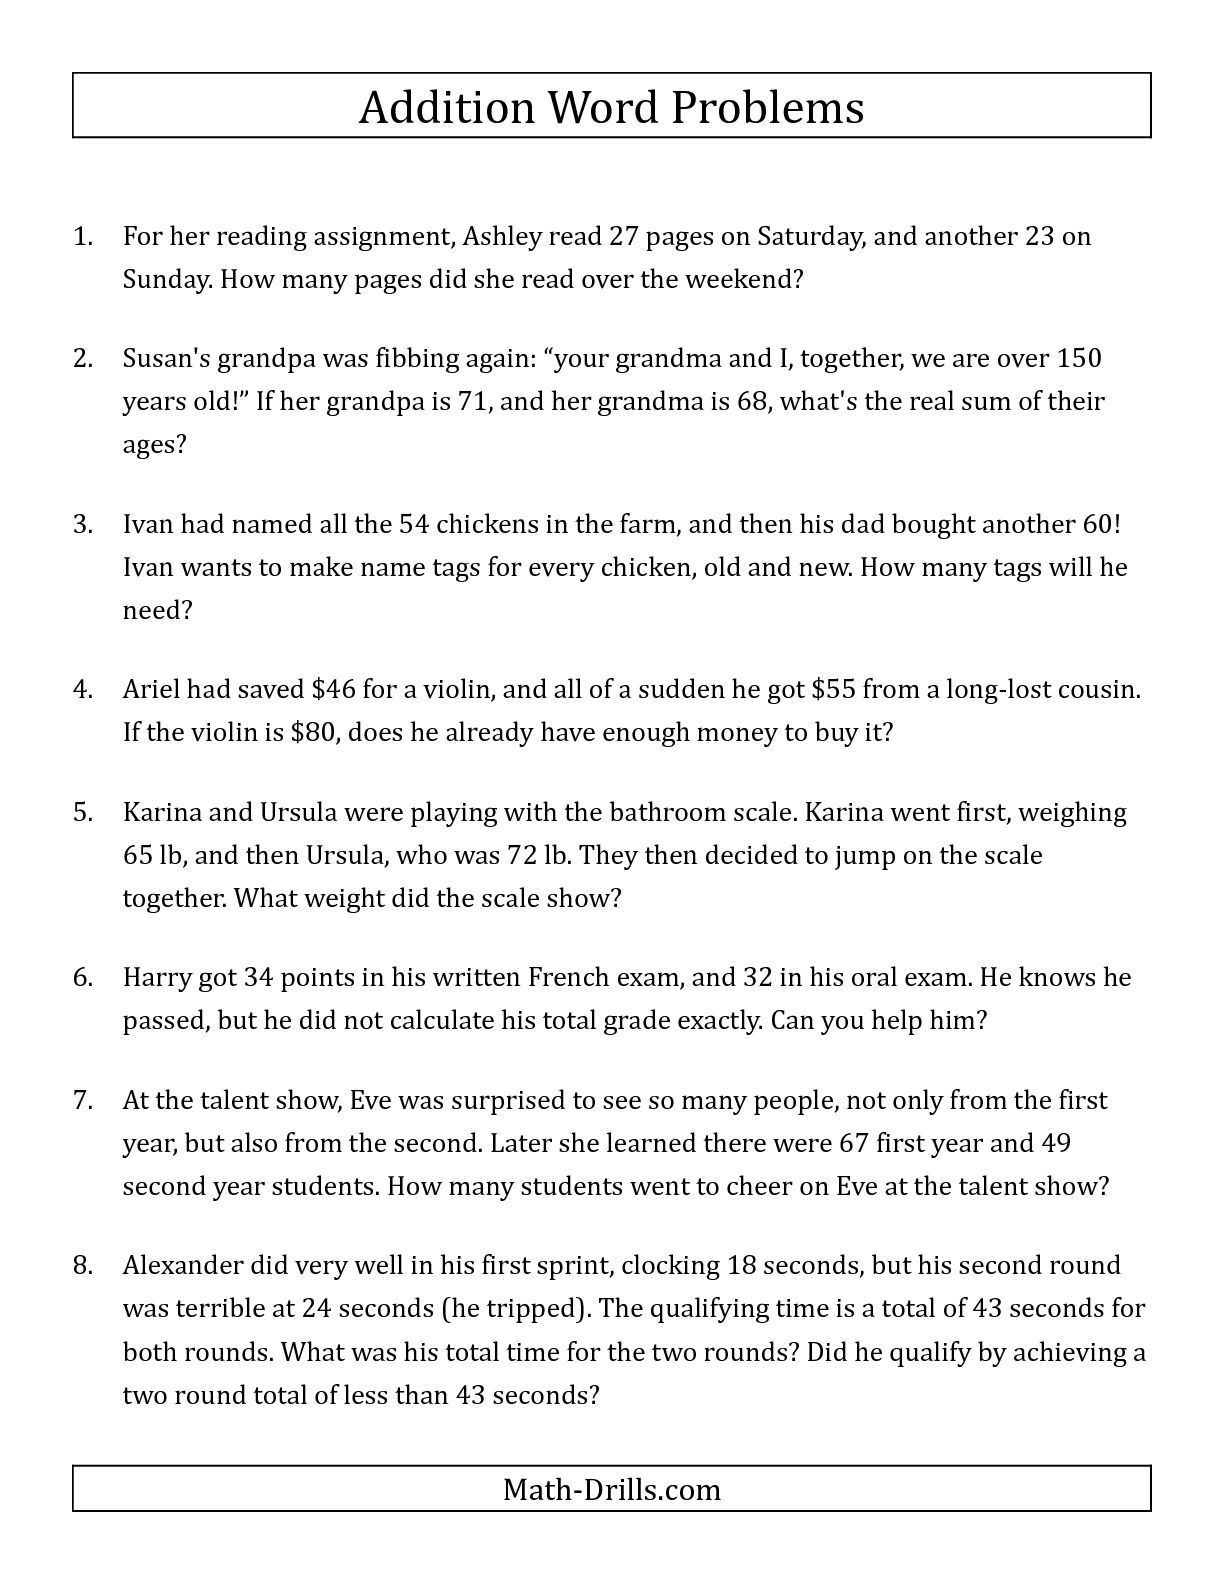 the single step addition word problems using two digit numbers a word problems worksheet. Black Bedroom Furniture Sets. Home Design Ideas